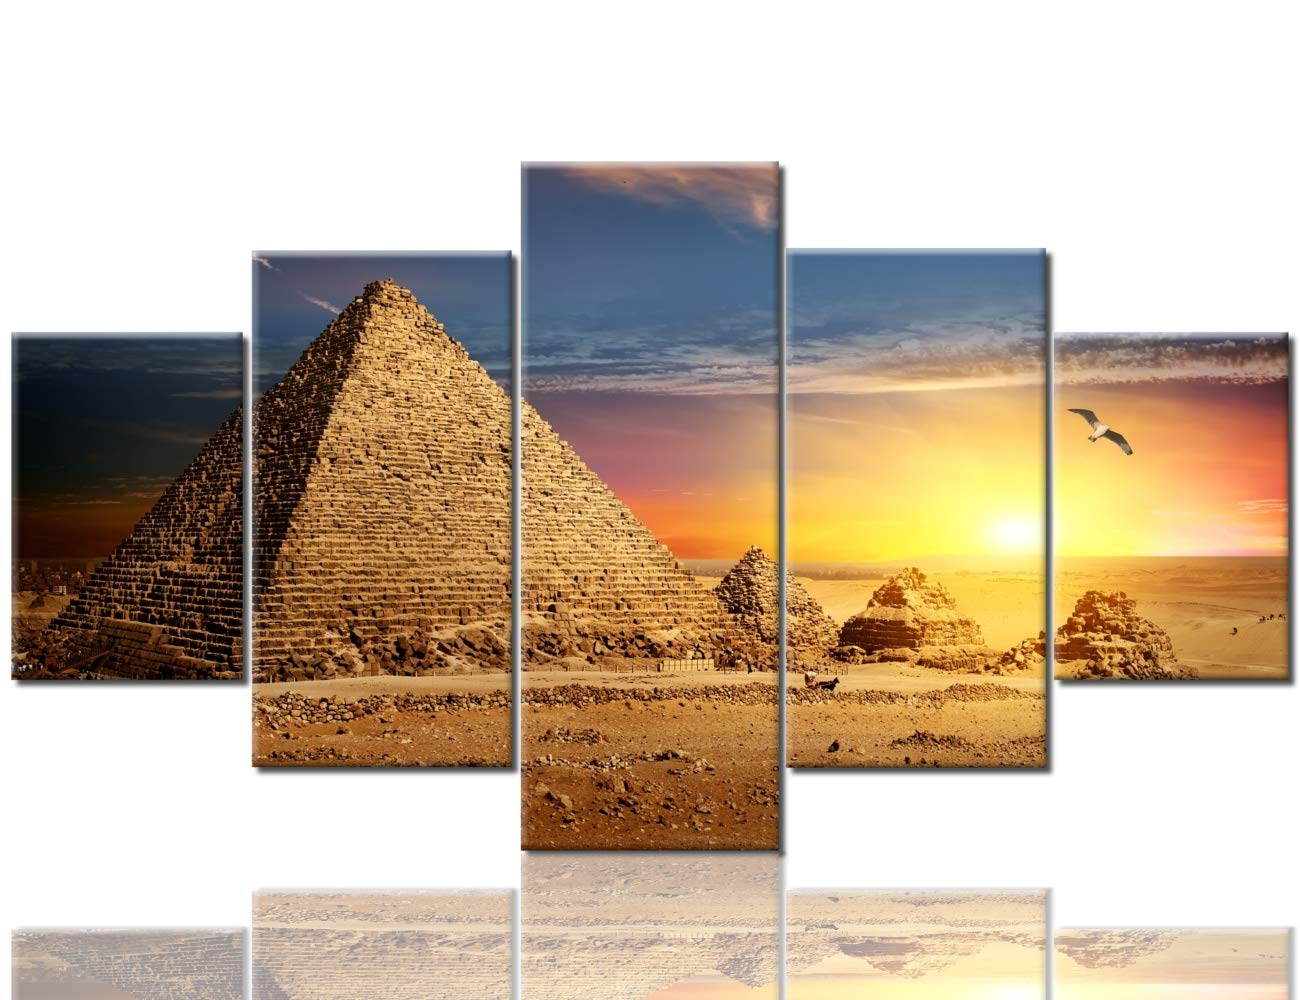 Artwork-10 60''Wx32''H Bedroom Pictures Wall Decor Ancient Pyramid Paintings African Desert Camel Modern Artwork Multi Panel Prints Wall Art on Canvas House Decorations Giclee Framed Stretched Ready to Hang(60''Wx32''H)